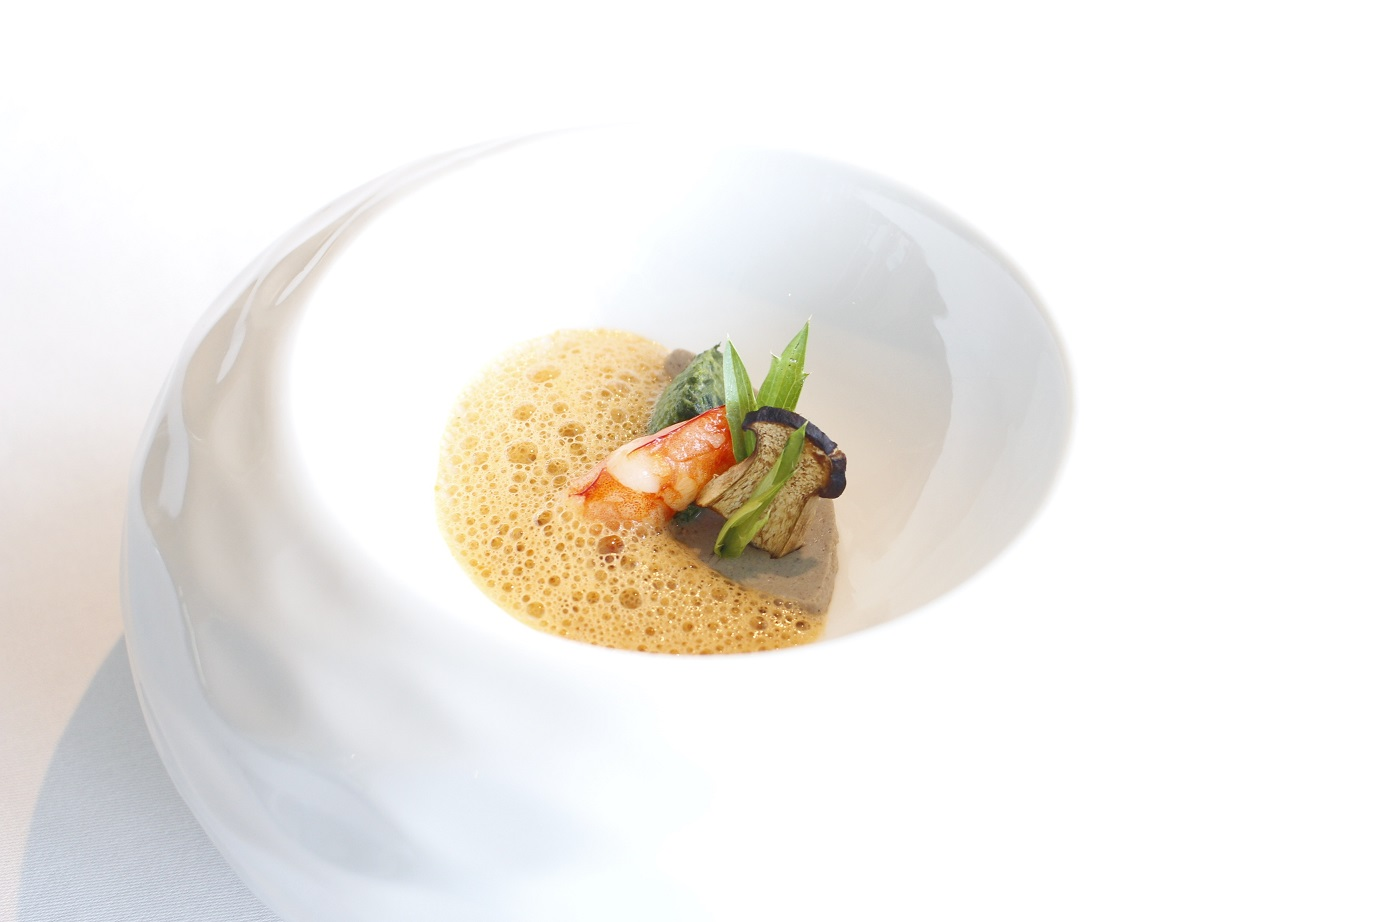 Experience a Michelin star restaurant at an affordable price